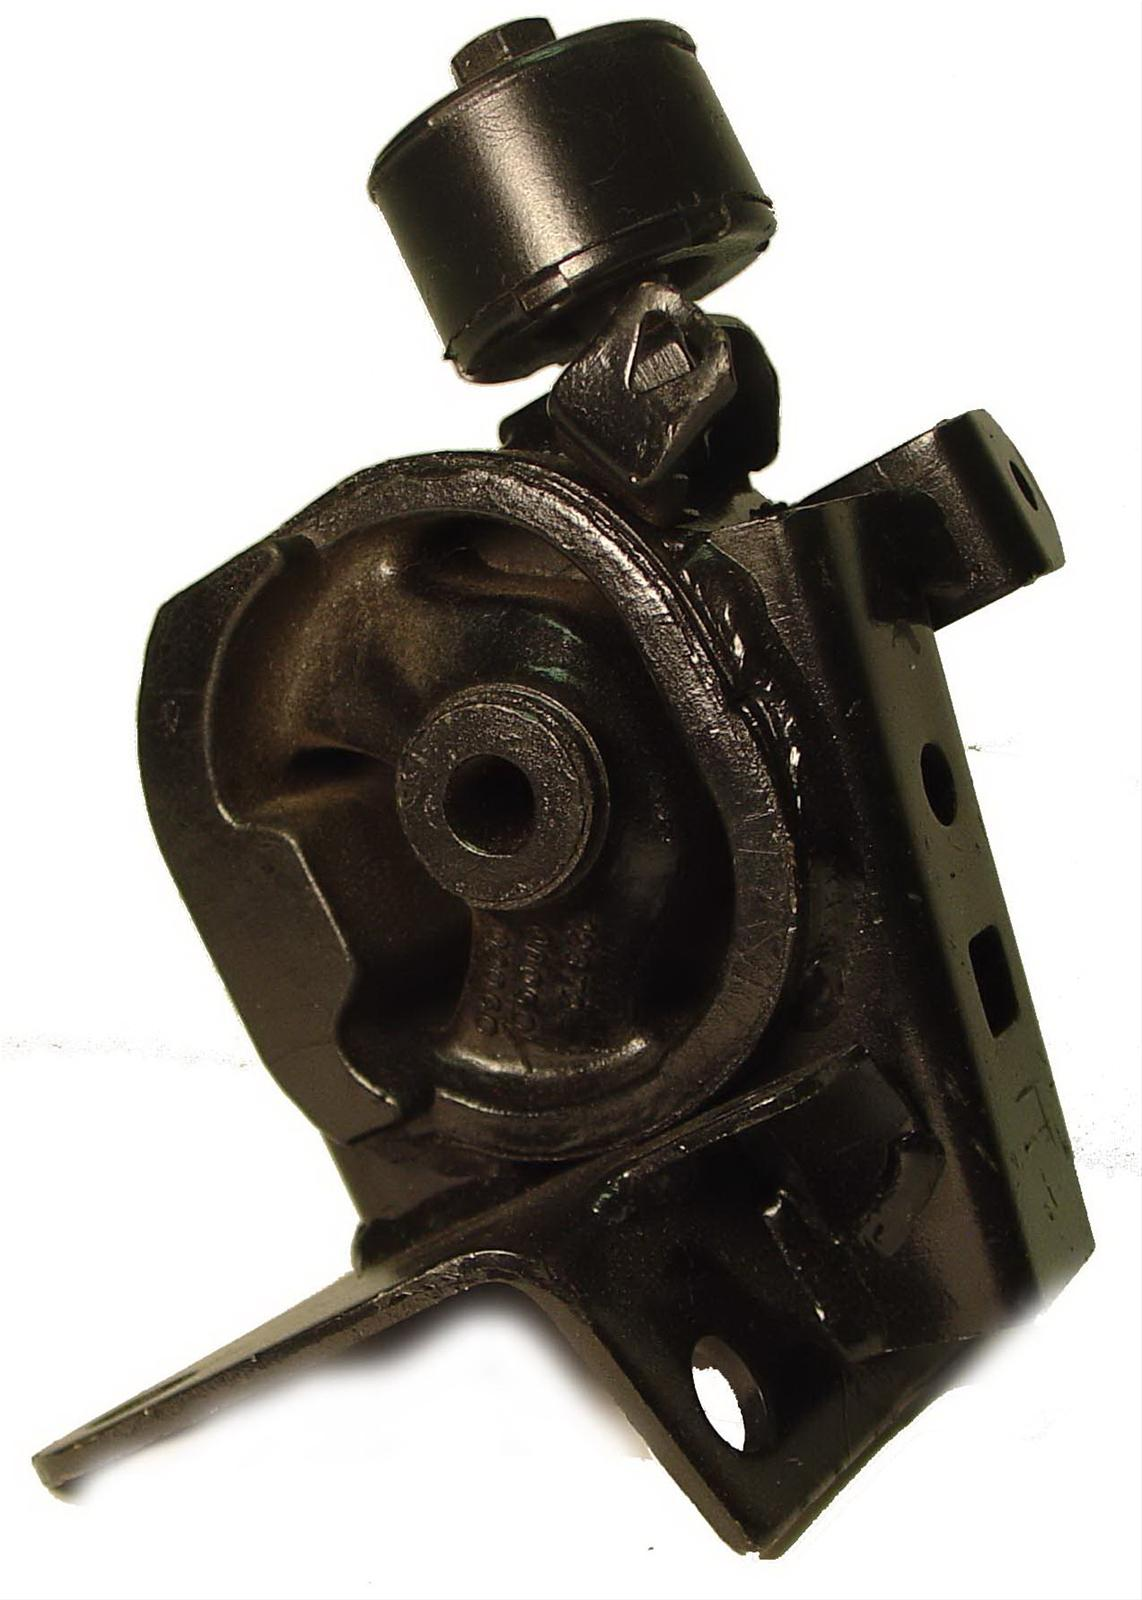 Anchor industries transmission mounts 9163 free shipping for Anchor industries motor mounts